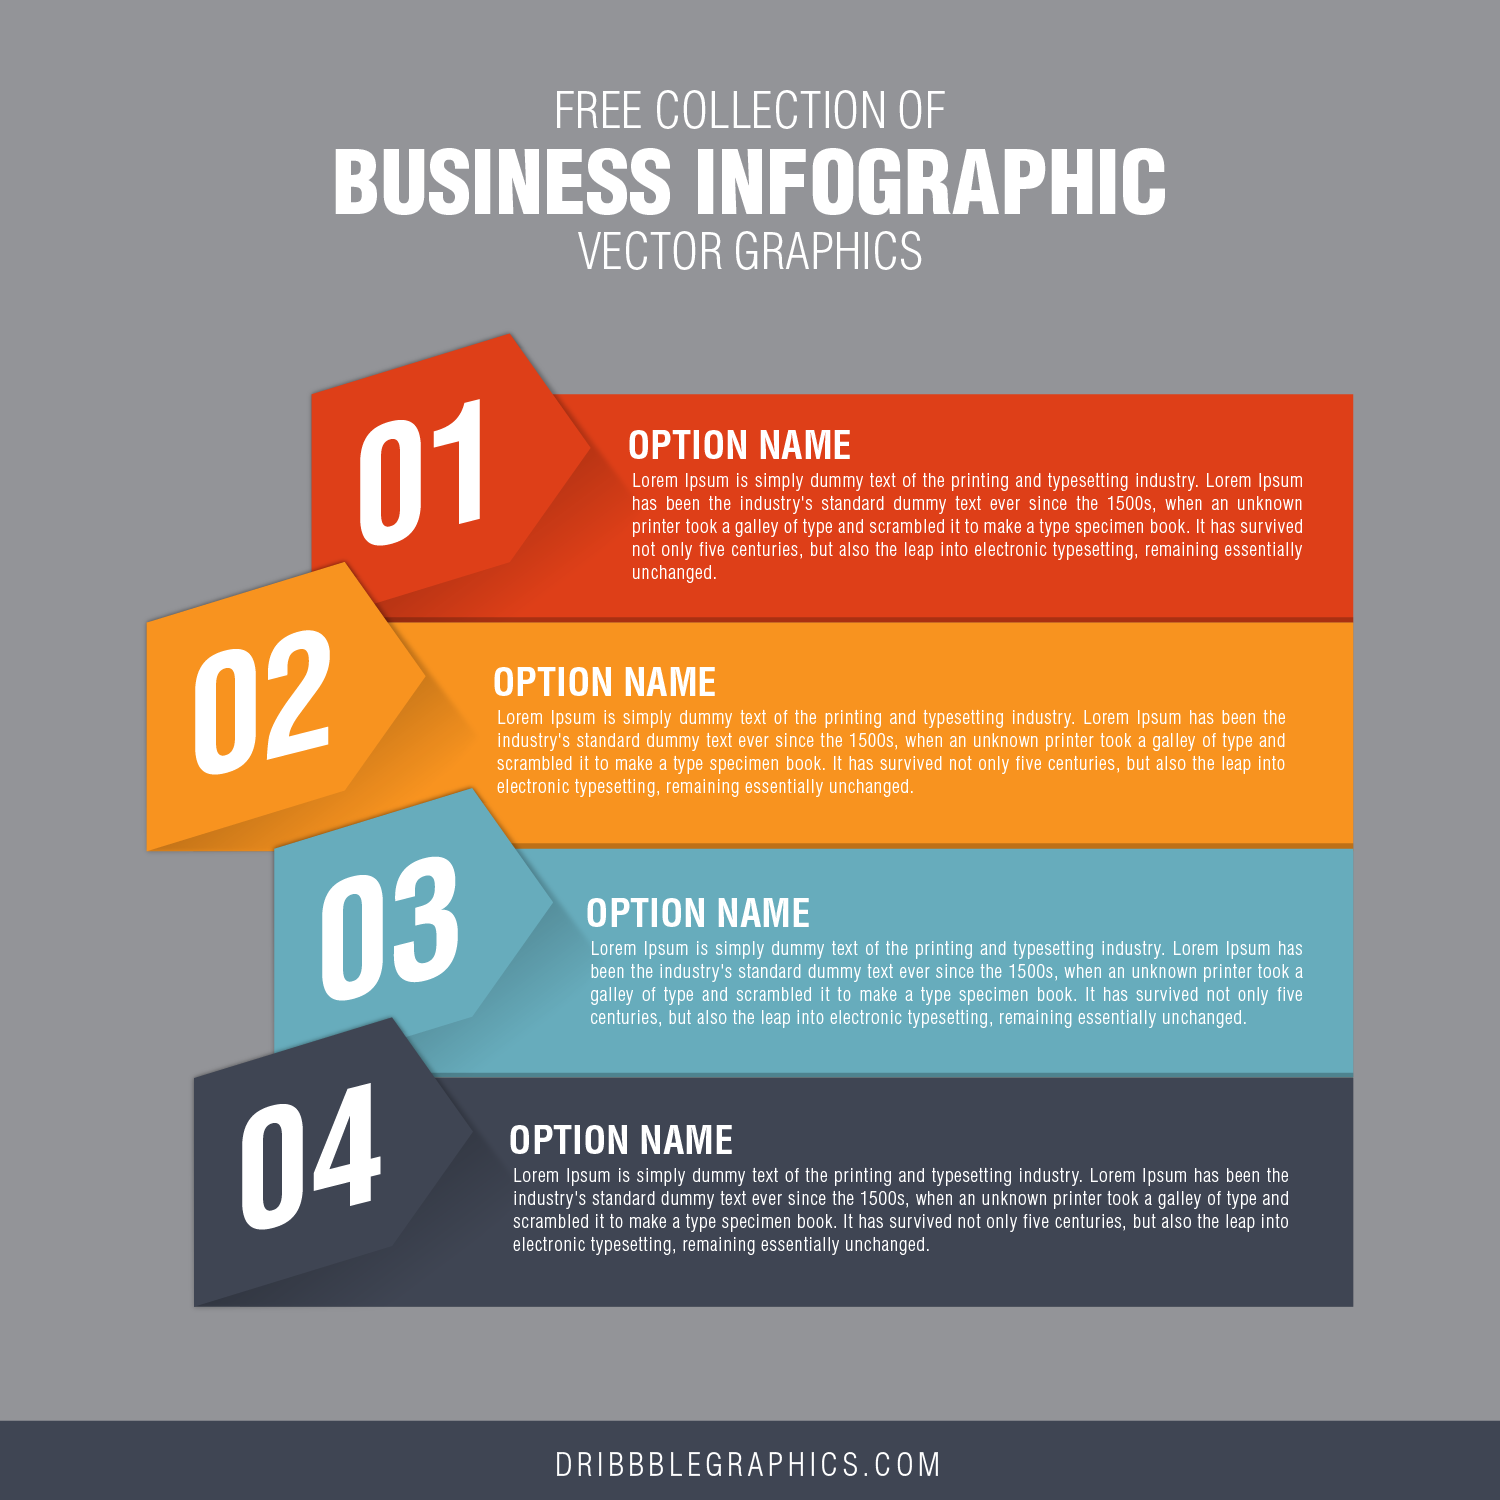 Free Collection of Business Infographic Vector Graphics-02